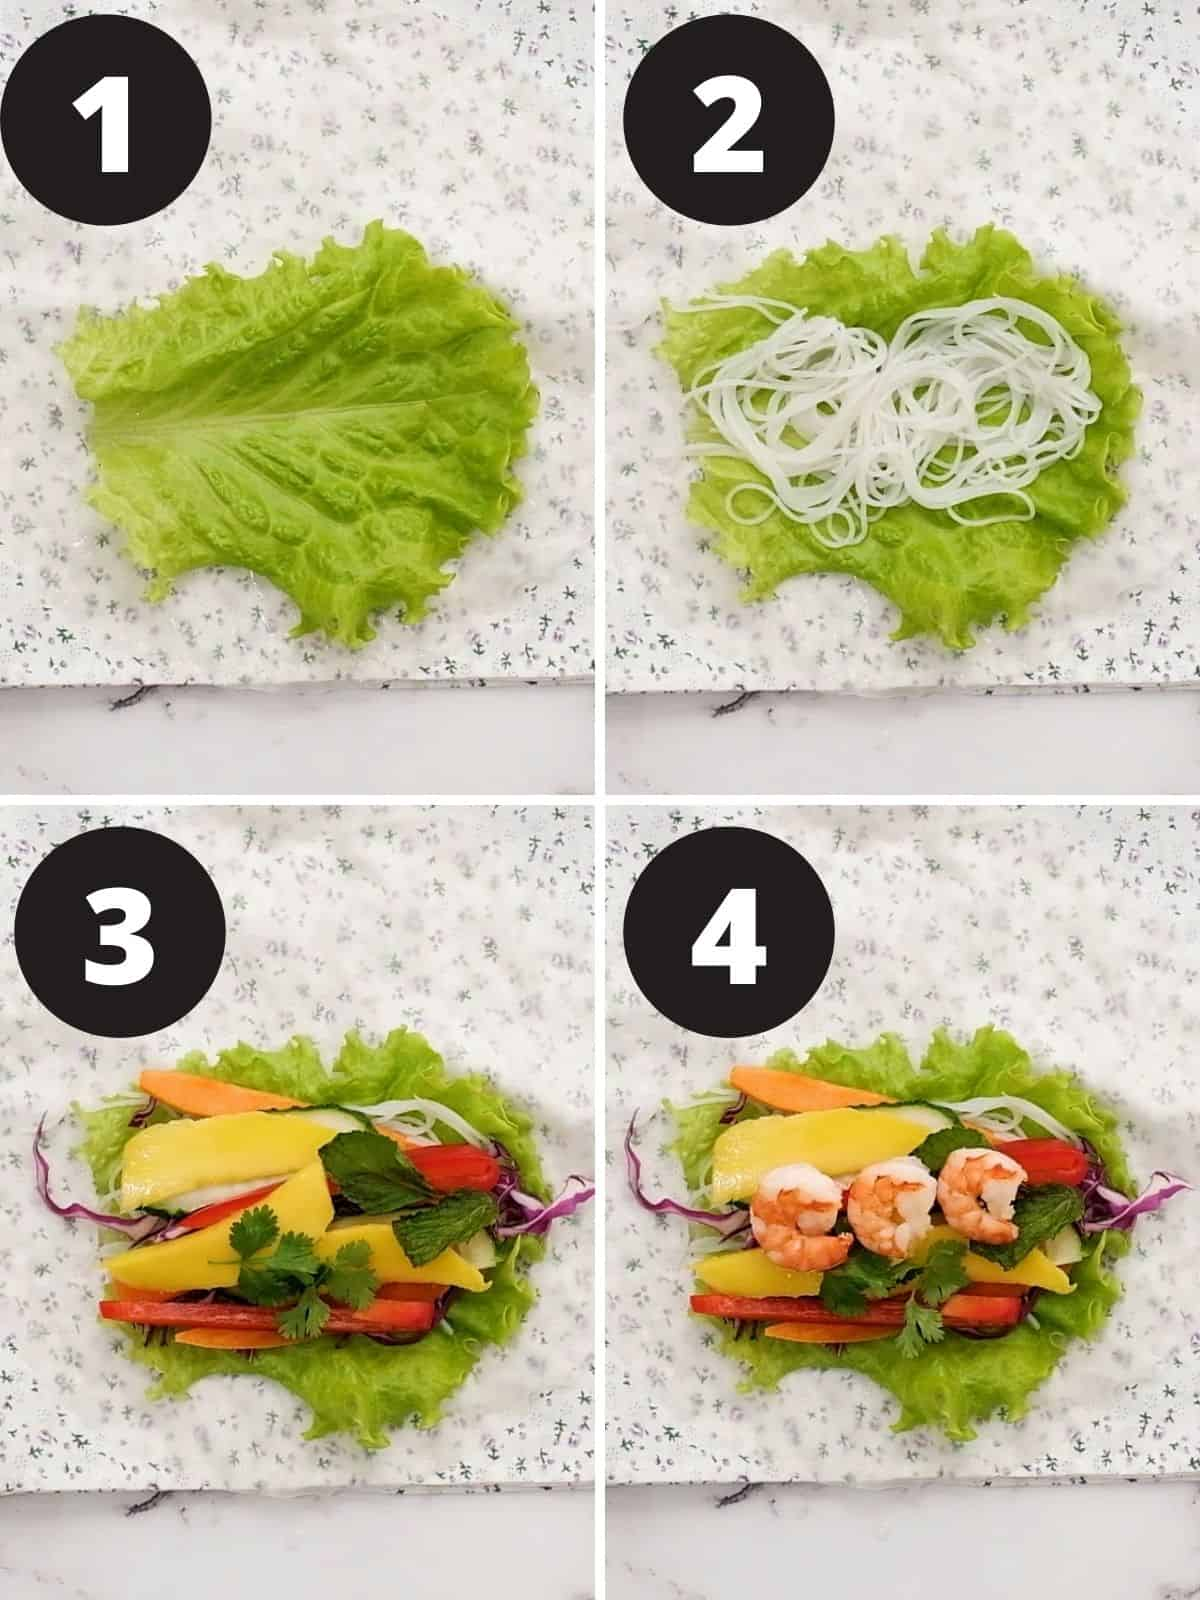 4 Step by step pictures of how to fill a spring roll.